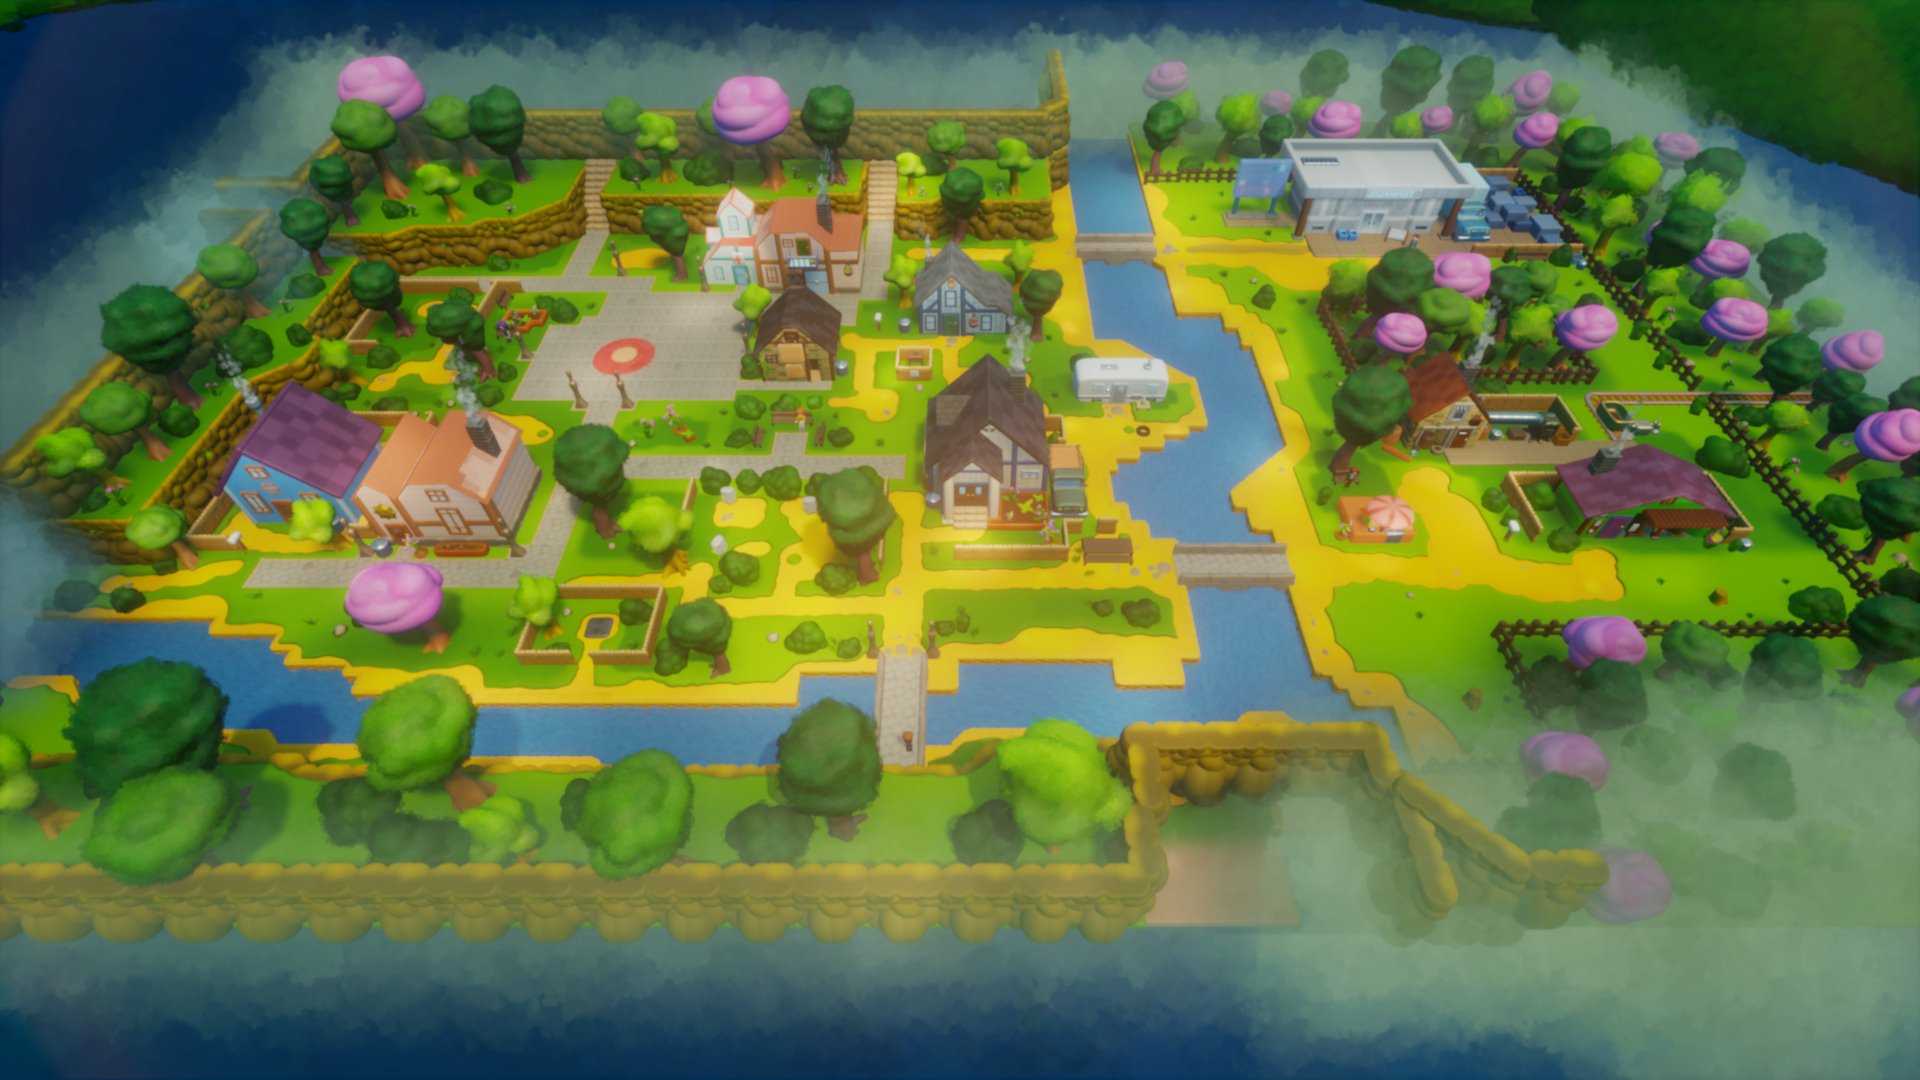 Stardew Valley's Pelican Town looks lovely in 3D – created in Dreams - VG247